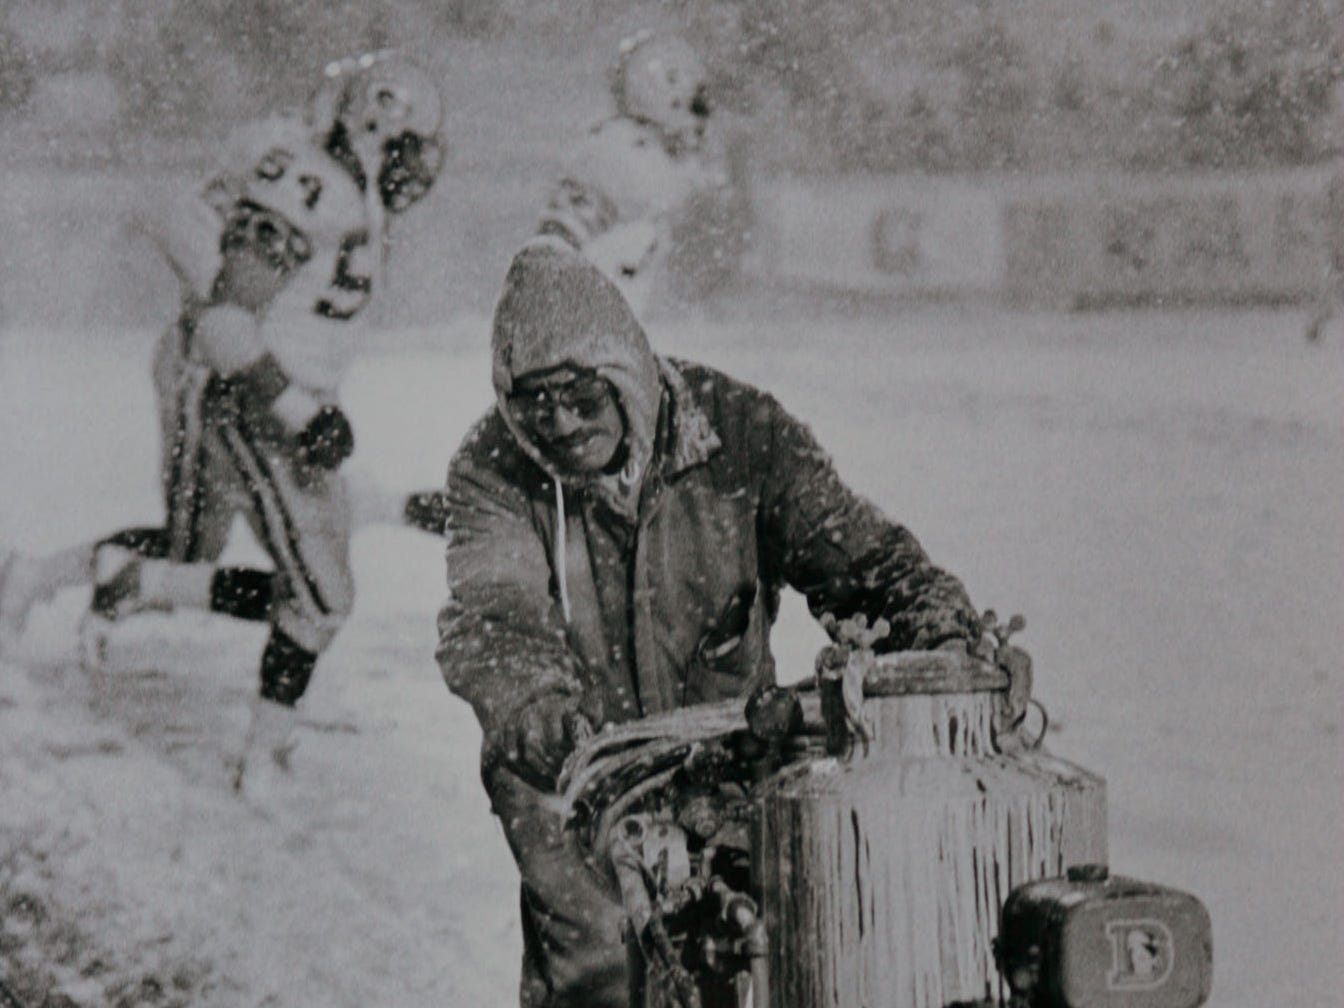 Oct. 15, 1984: A maintenance worker paints orange stripes on the field as more than 10 inches of snow falls during the Monday Night Football game between the Green Bay Packers and Denver Broncos at Mile High Stadium.  The Broncos won the game, 17-14.